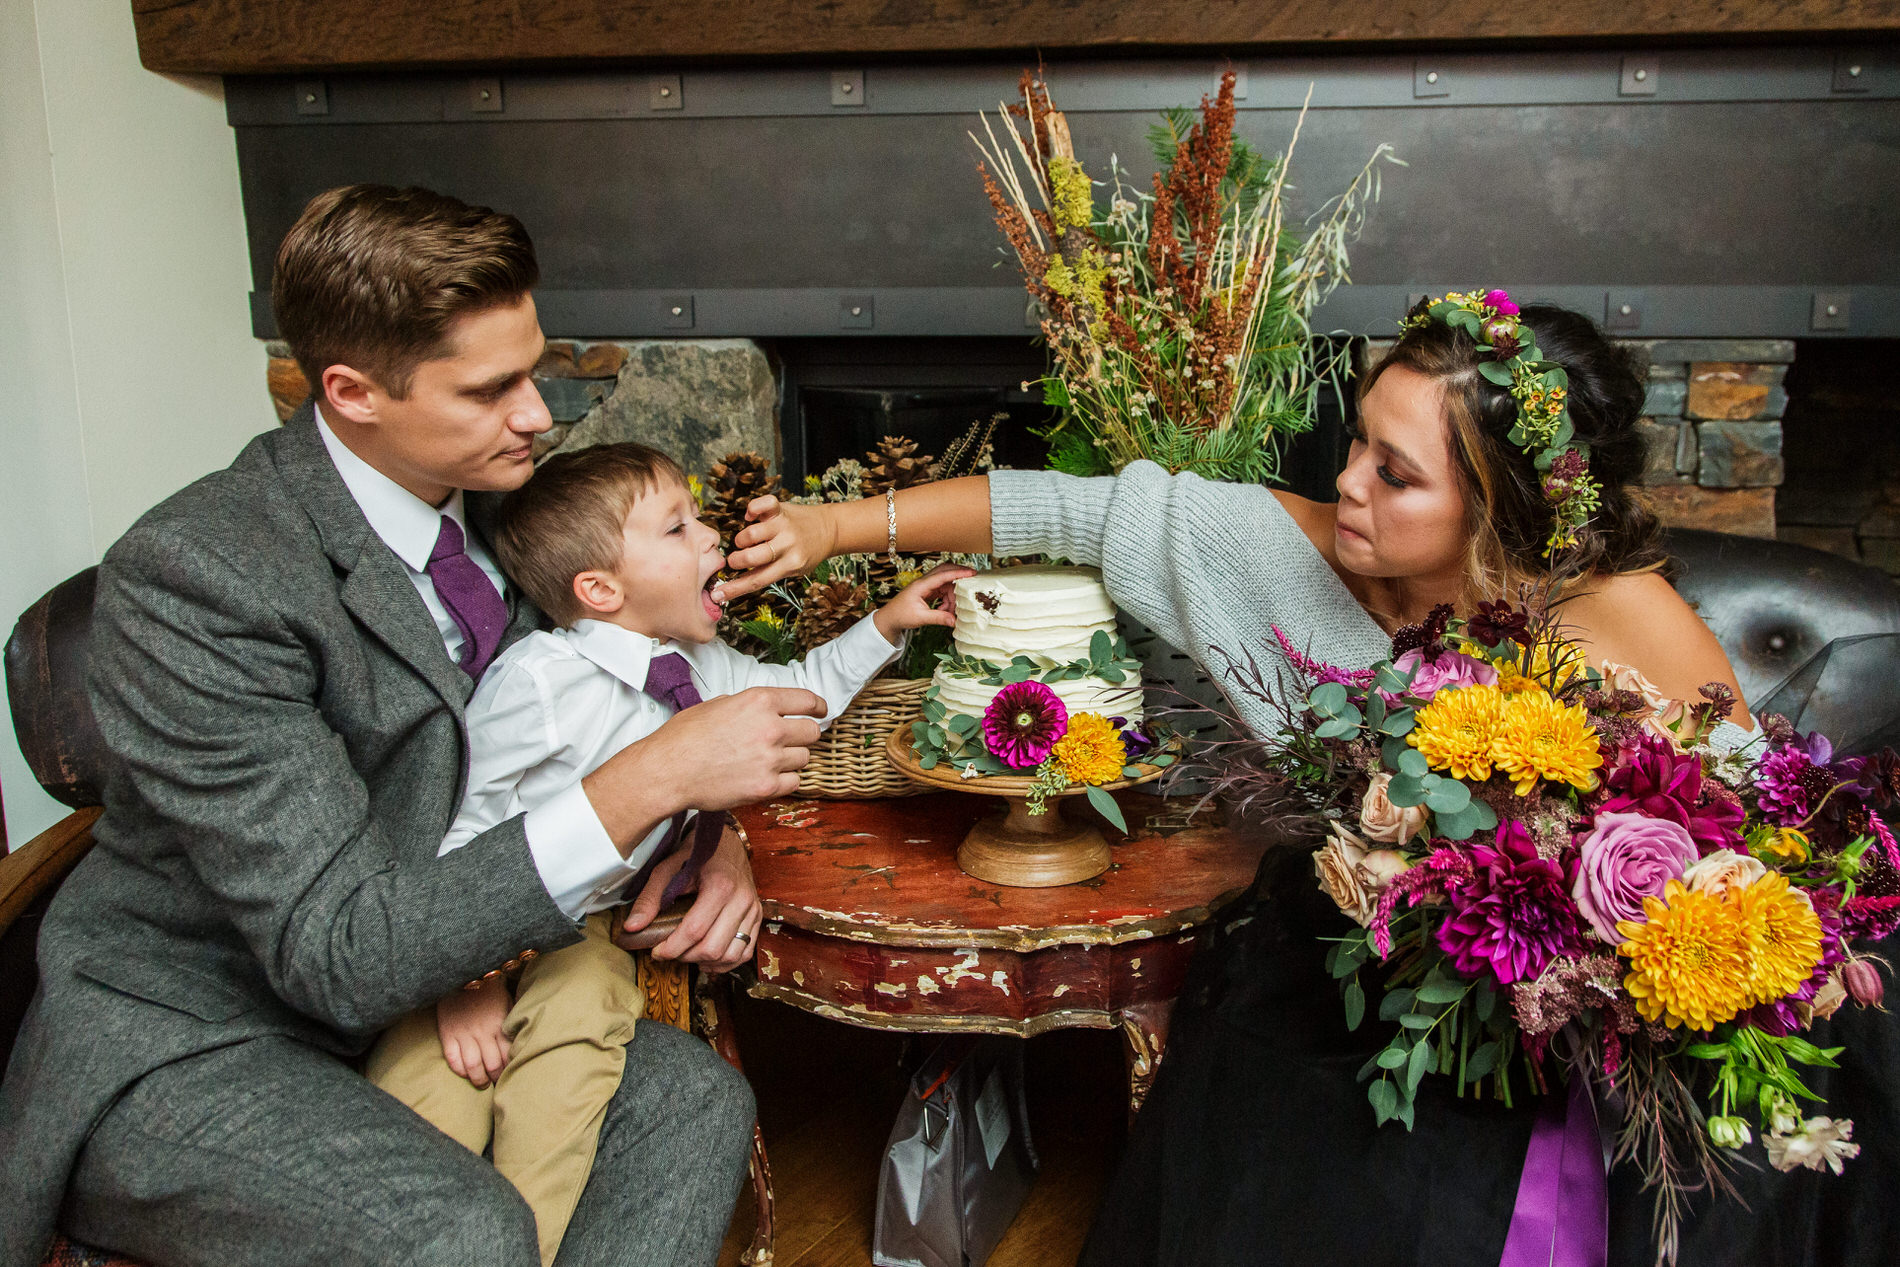 Tahoe City, California Elopement Photo | The bride, groom, and their son opted for an informal cake-cutting